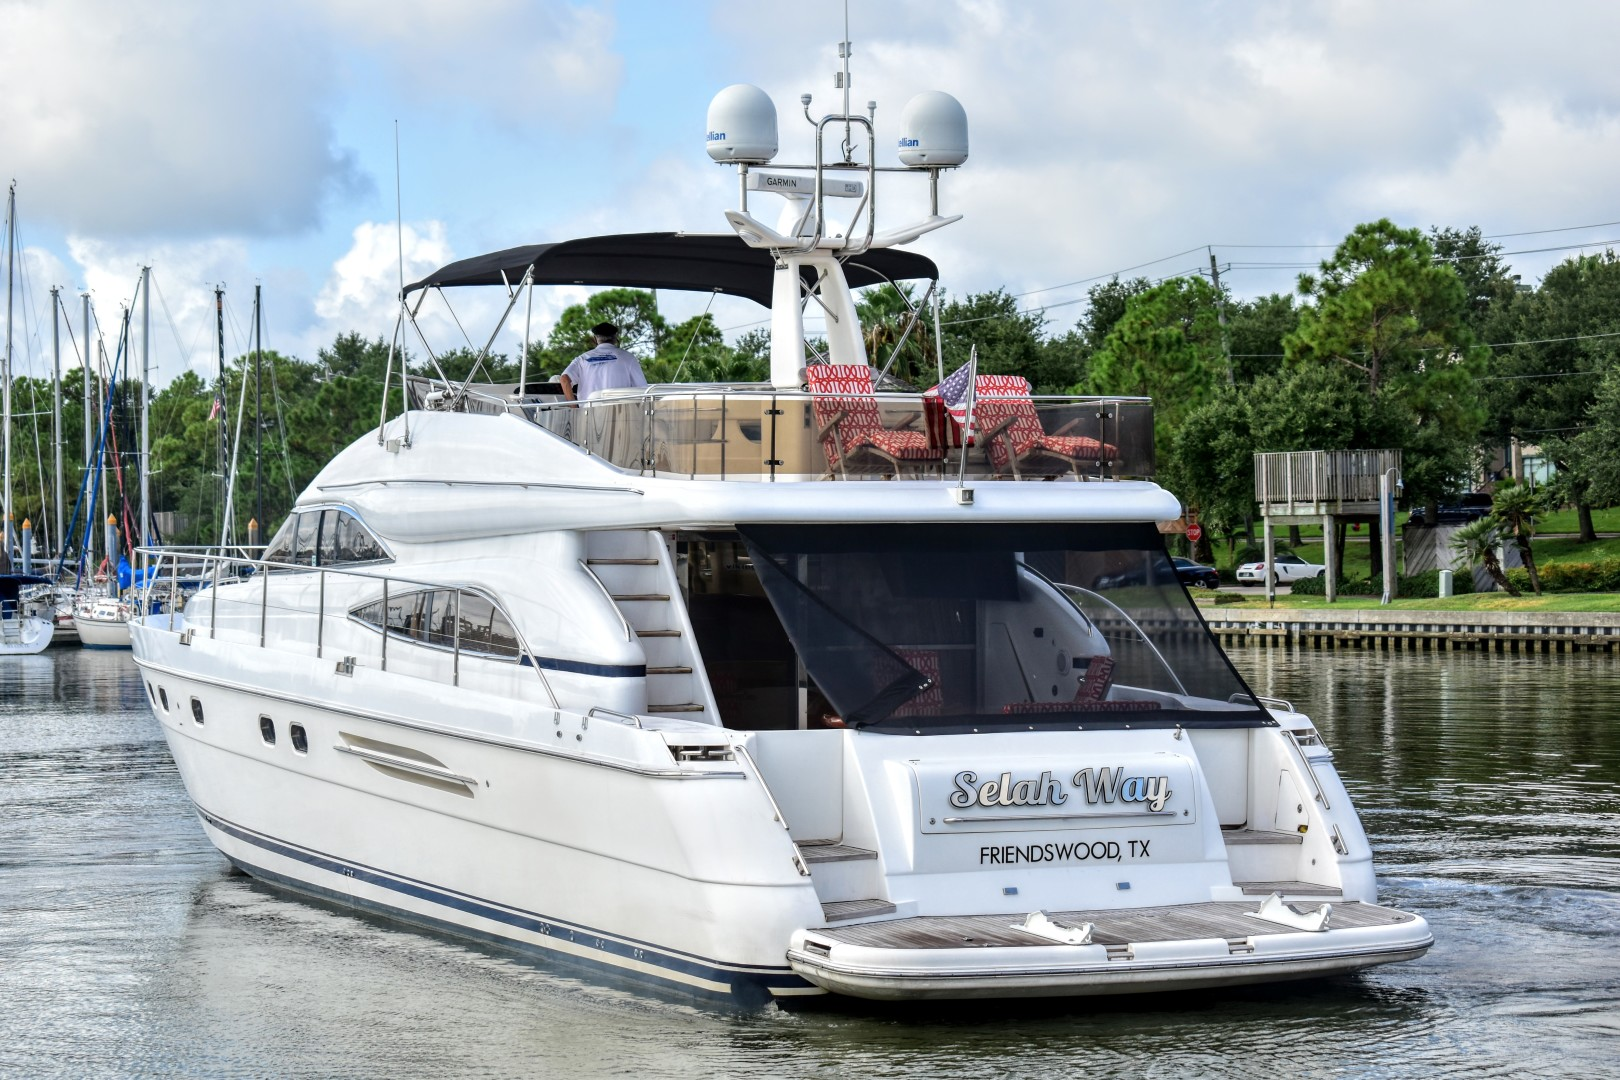 Viking Princess-65 Motor Yacht 2003-Selah Way Kemah-Texas-United States-Viking Princess Motor Yacht 2003 Selah Way-1203715 | Thumbnail